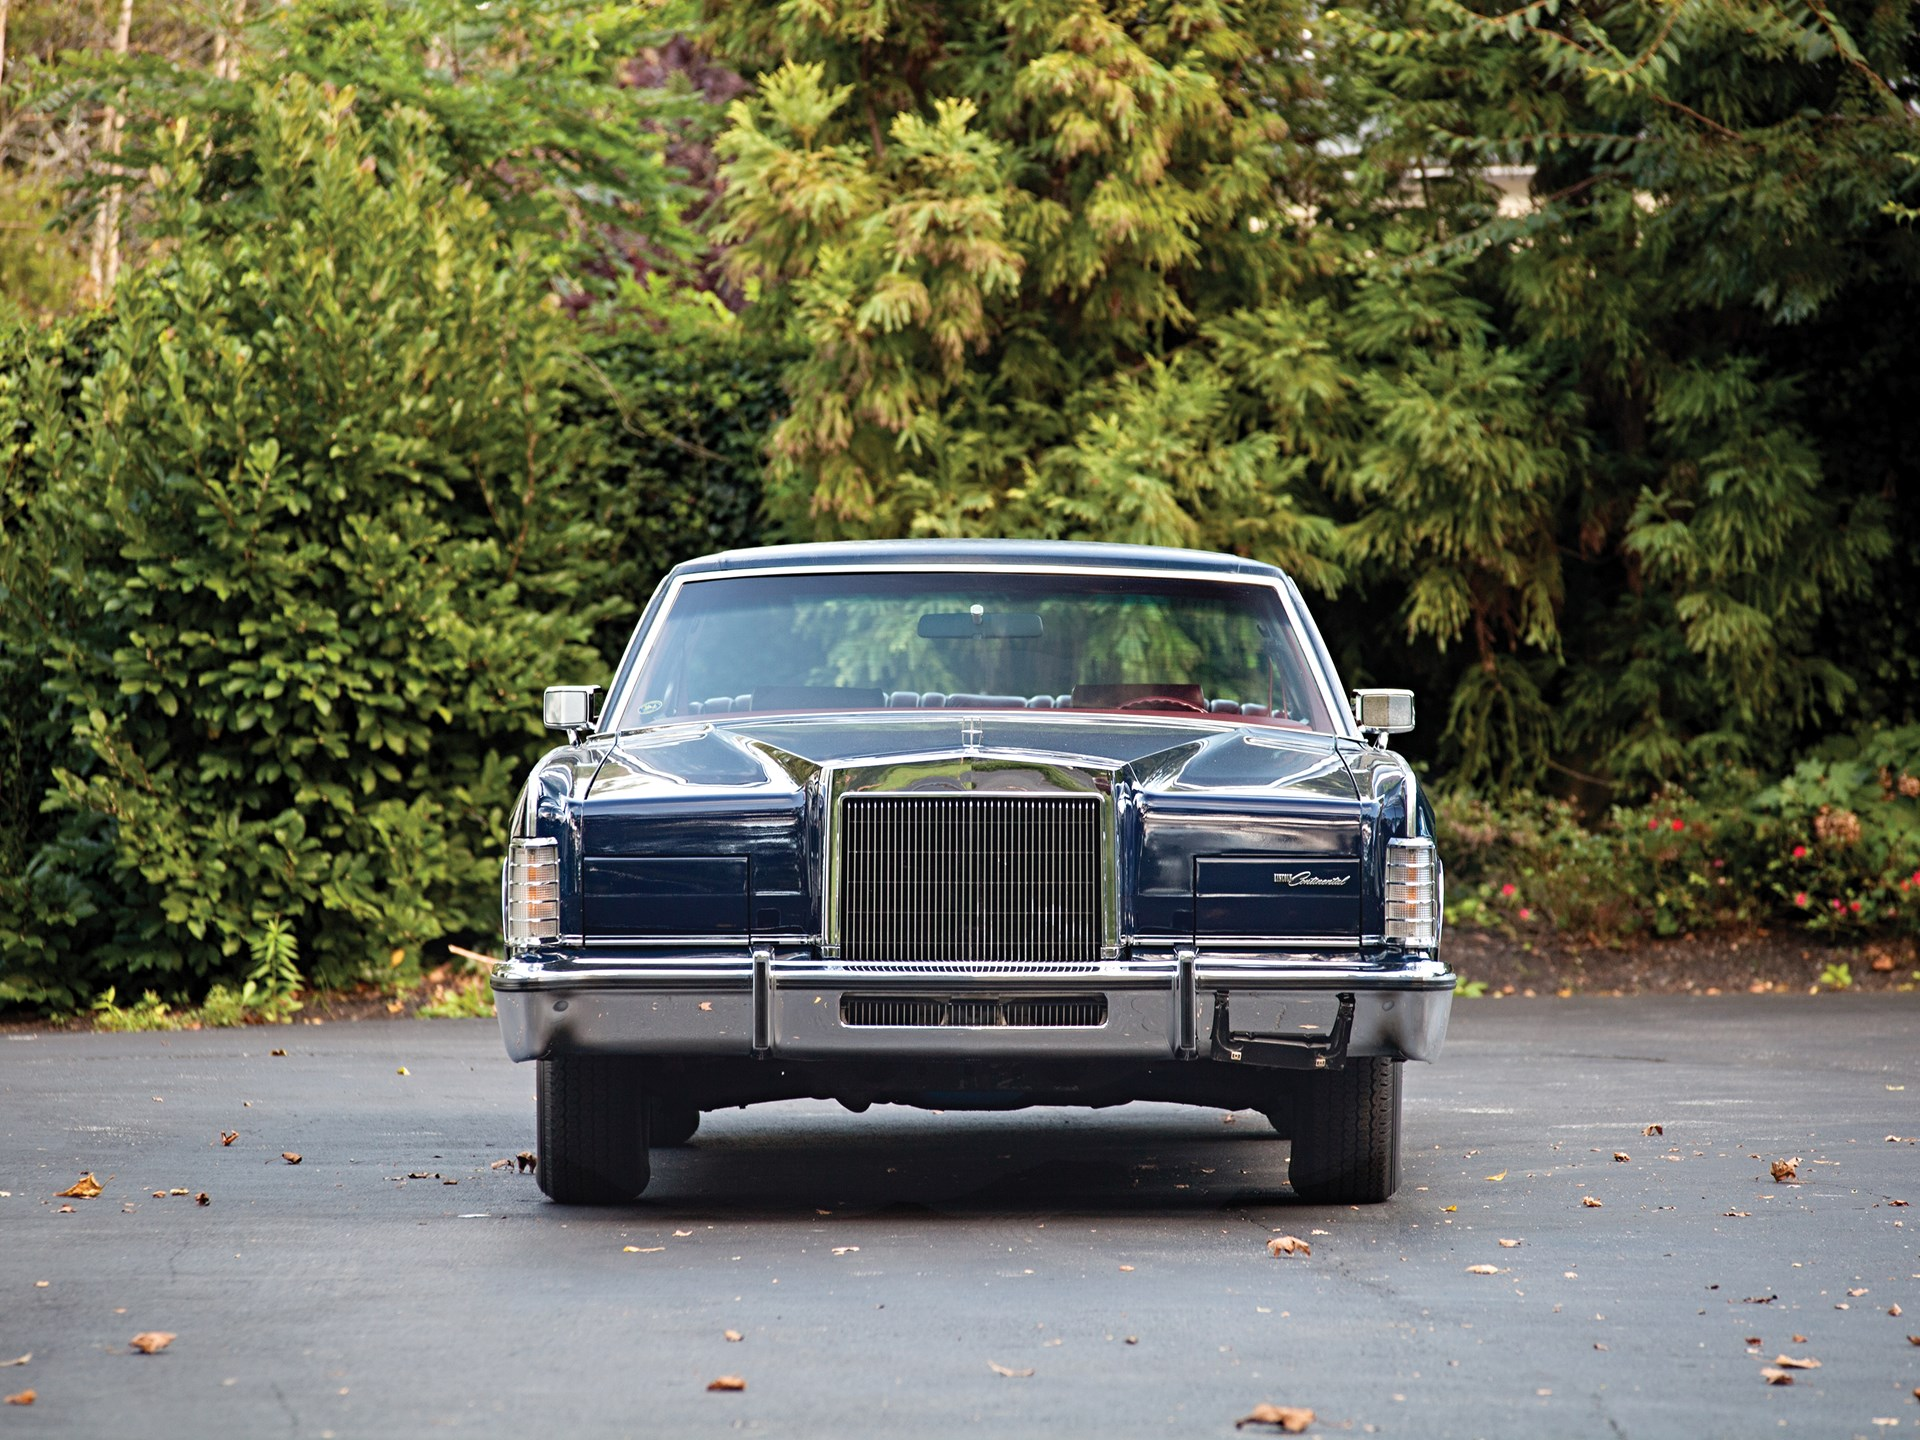 RM Sotheby's - 1977 Lincoln Continental Town Car | Hershey 2013